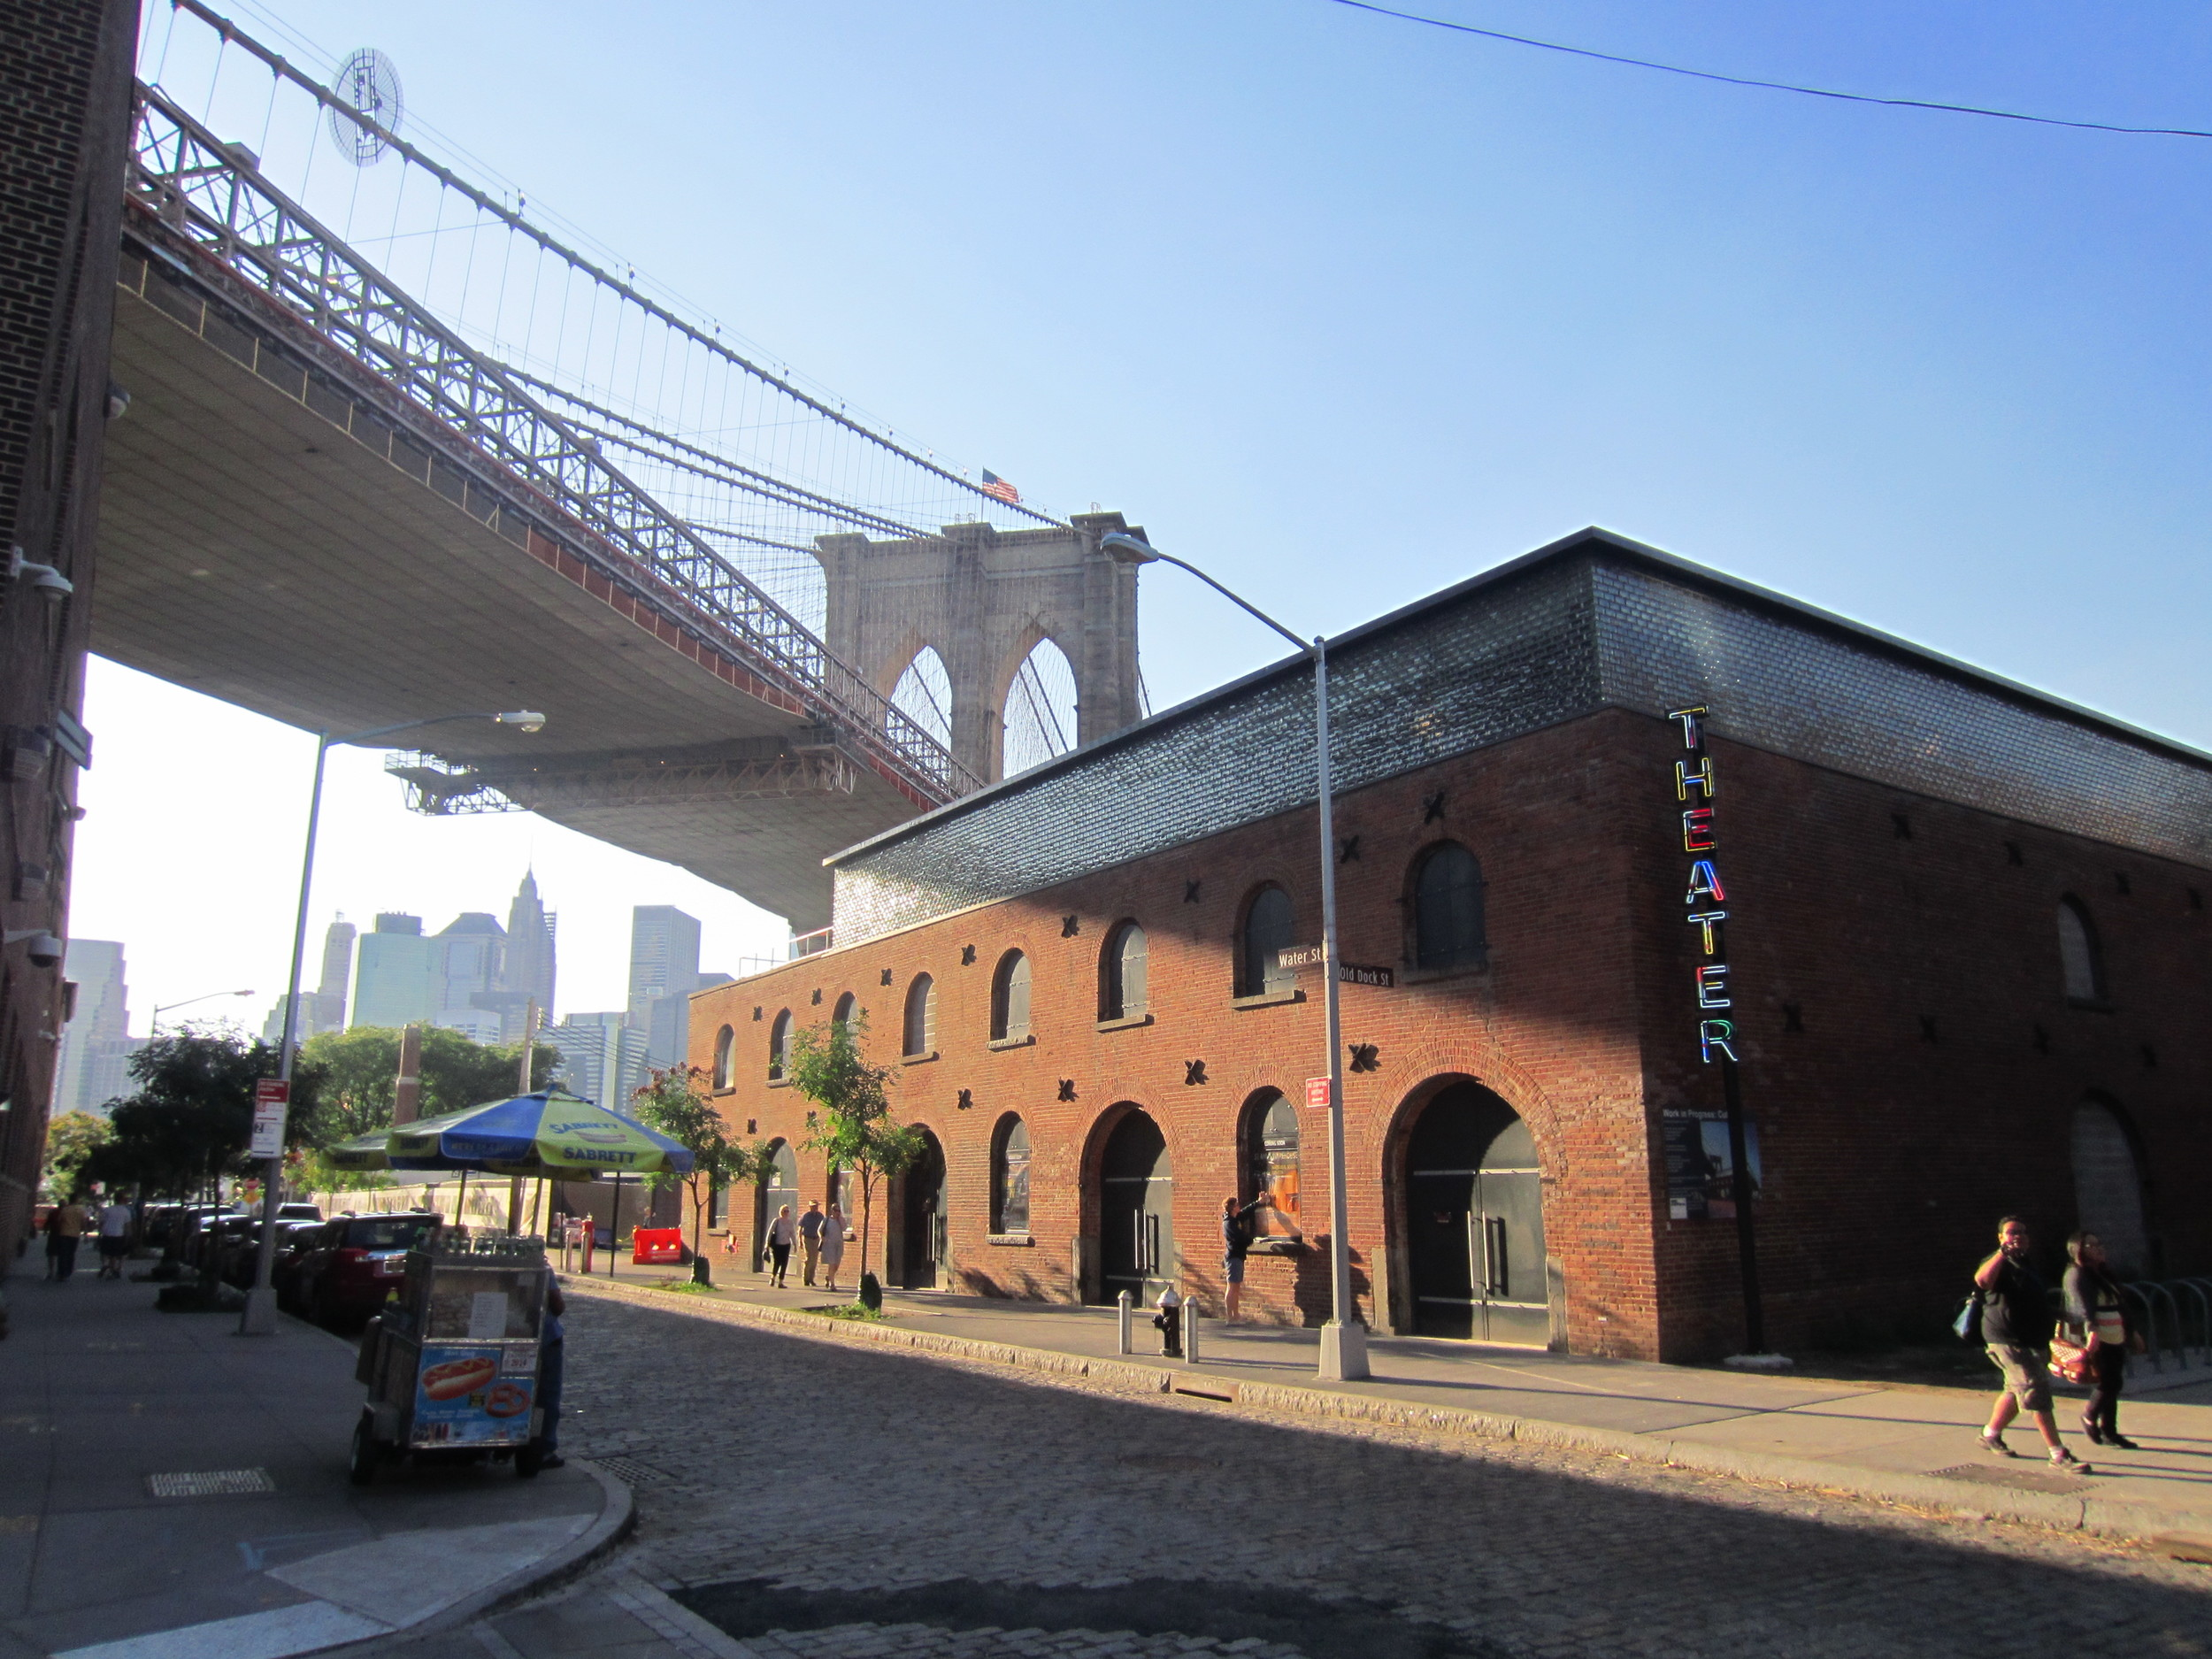 DUMBO-licious new Food Truck Tour!